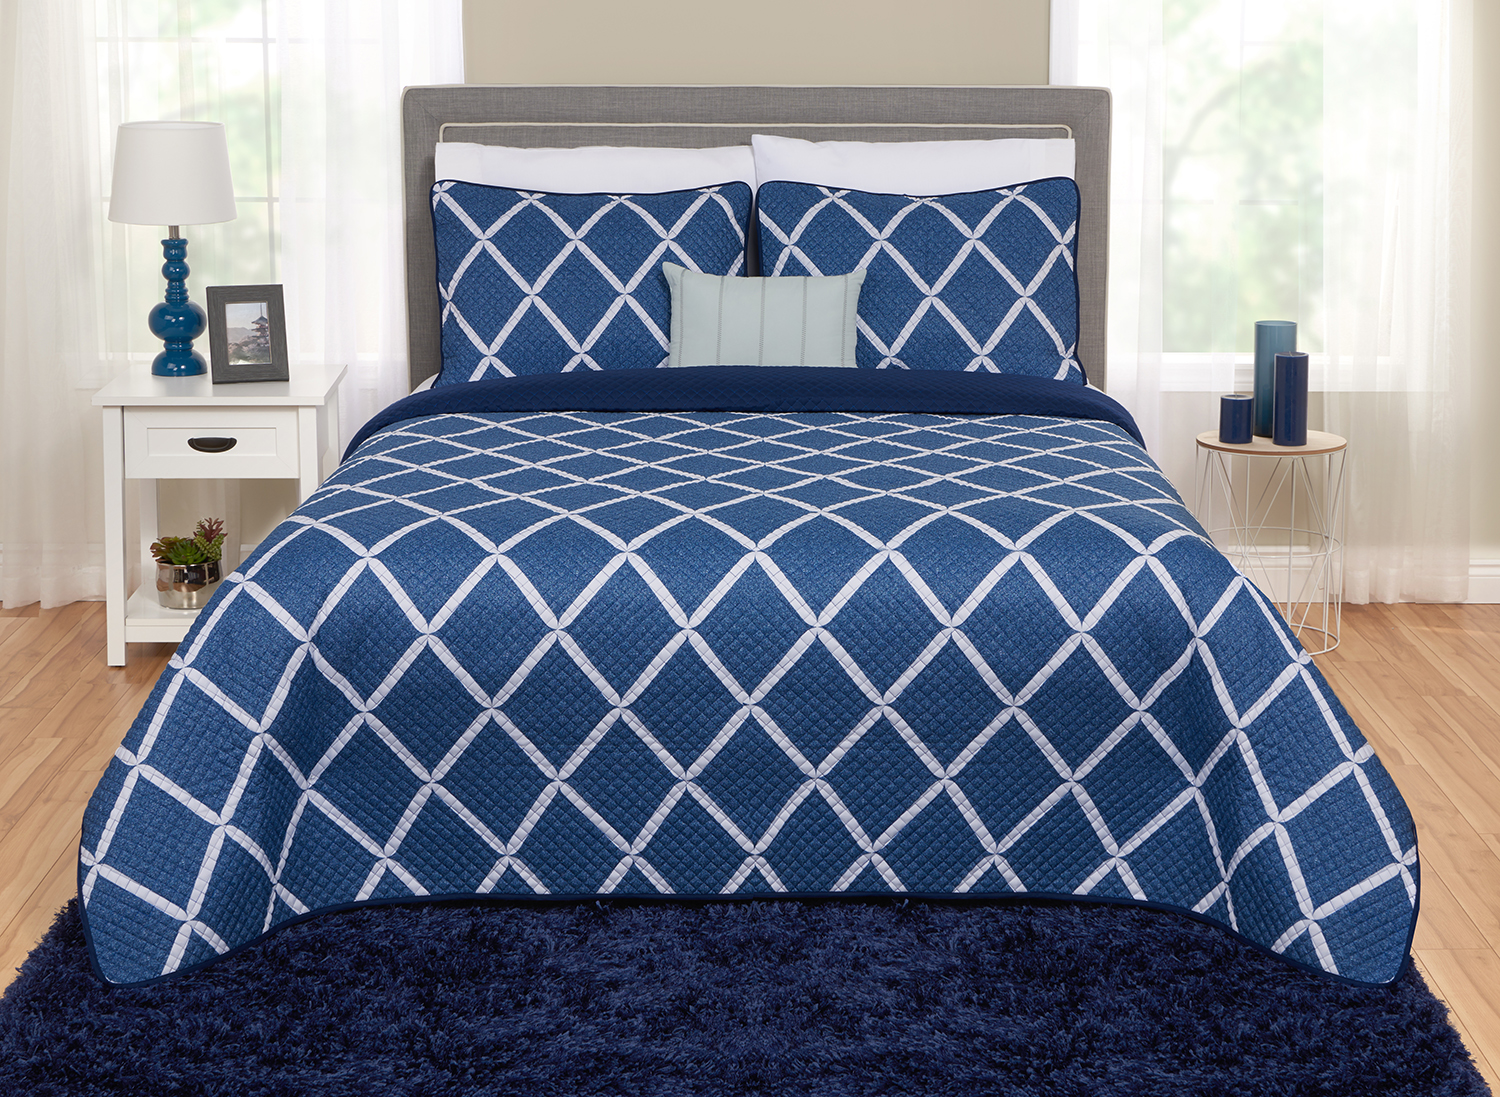 Better Homes and Gardens Diamond Quilt, Sham & Dec Pillow Set by Beco Industries